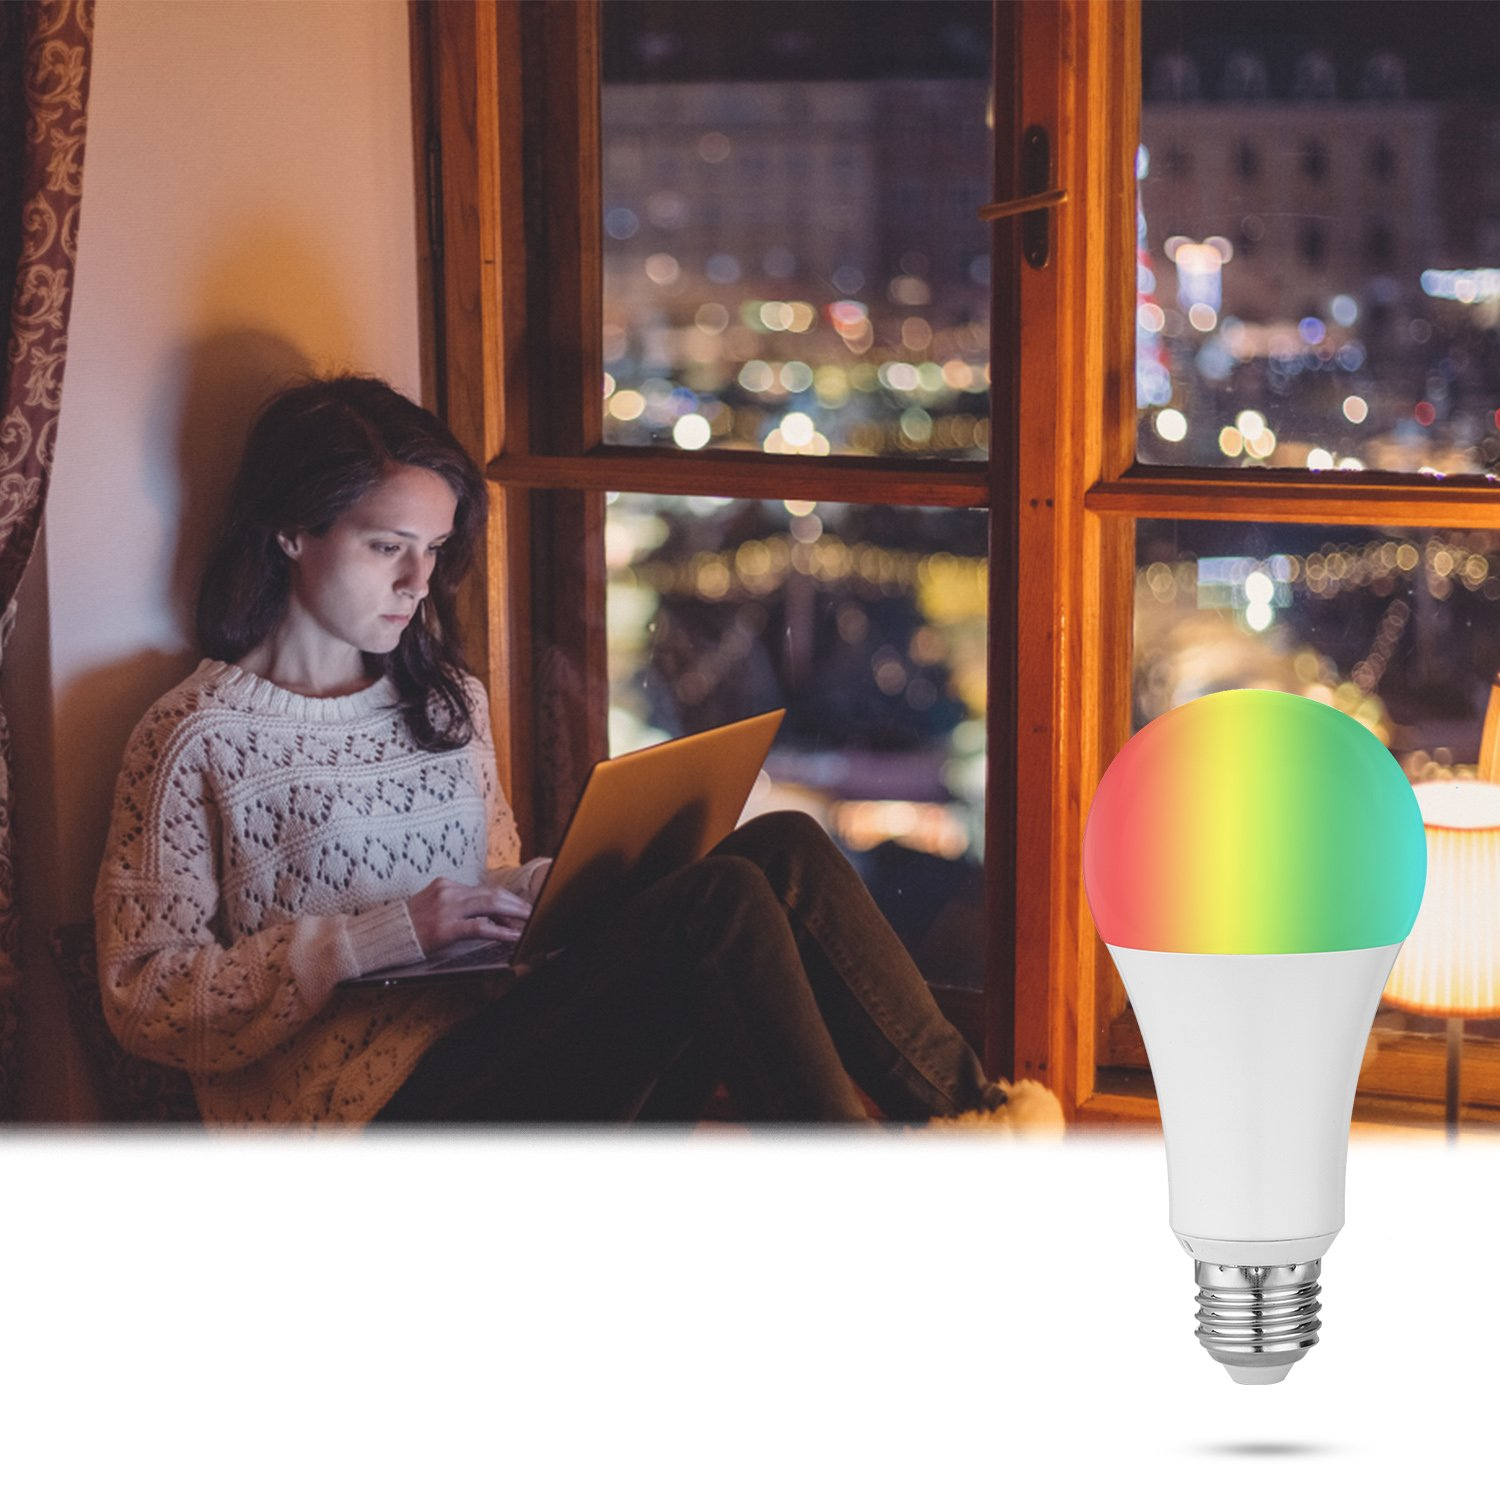 Compatible with Alexa /& Google Home E26 A19 WiFi Smart LED Light Bulb Dimmable Adjustable and Multicolor No Hub Required Smartphone Controlled 60W Equivalent Upgrade